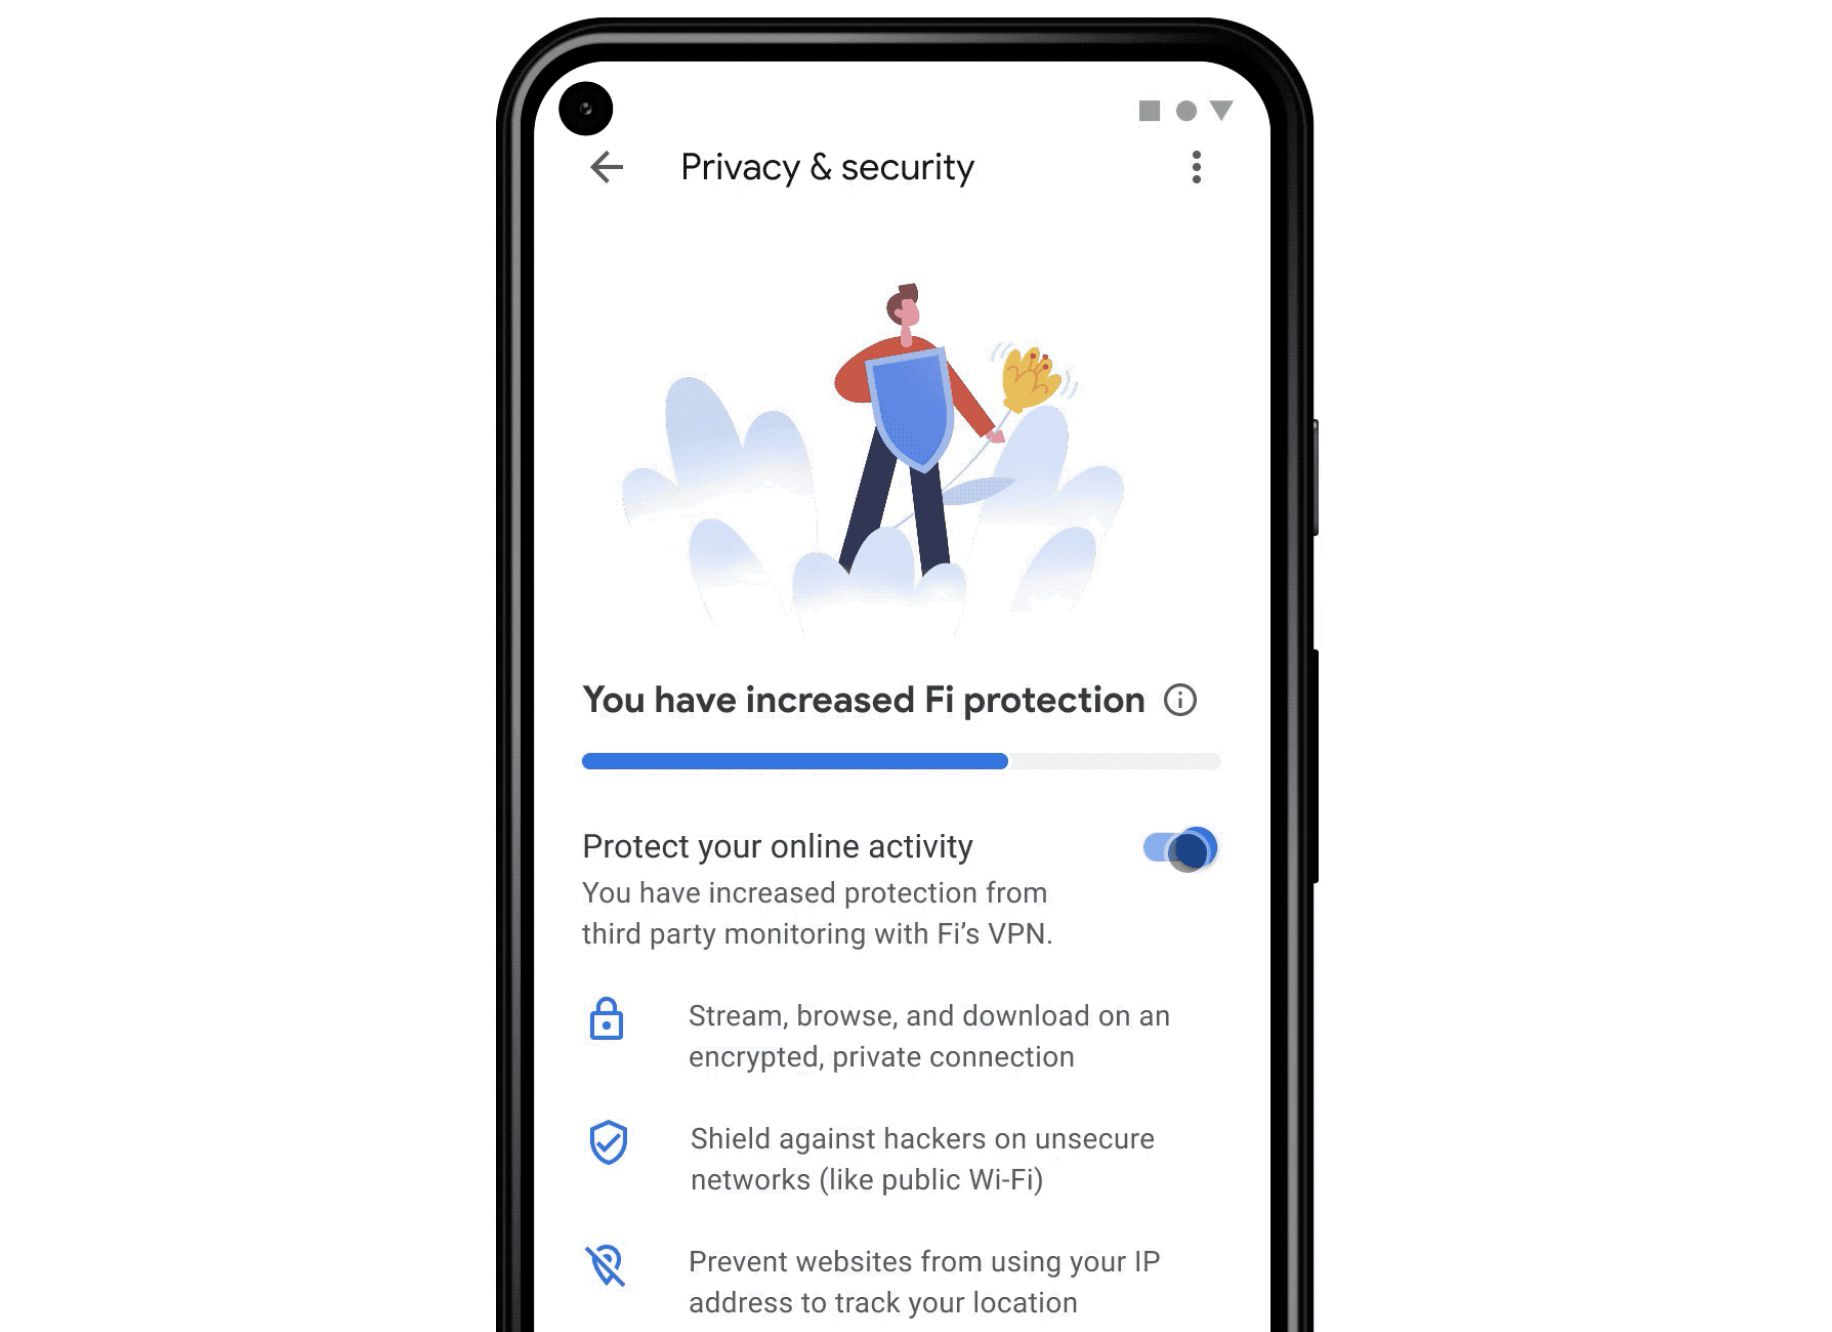 Google Fi Expanding VPN to iPhone Users Starting This Spring